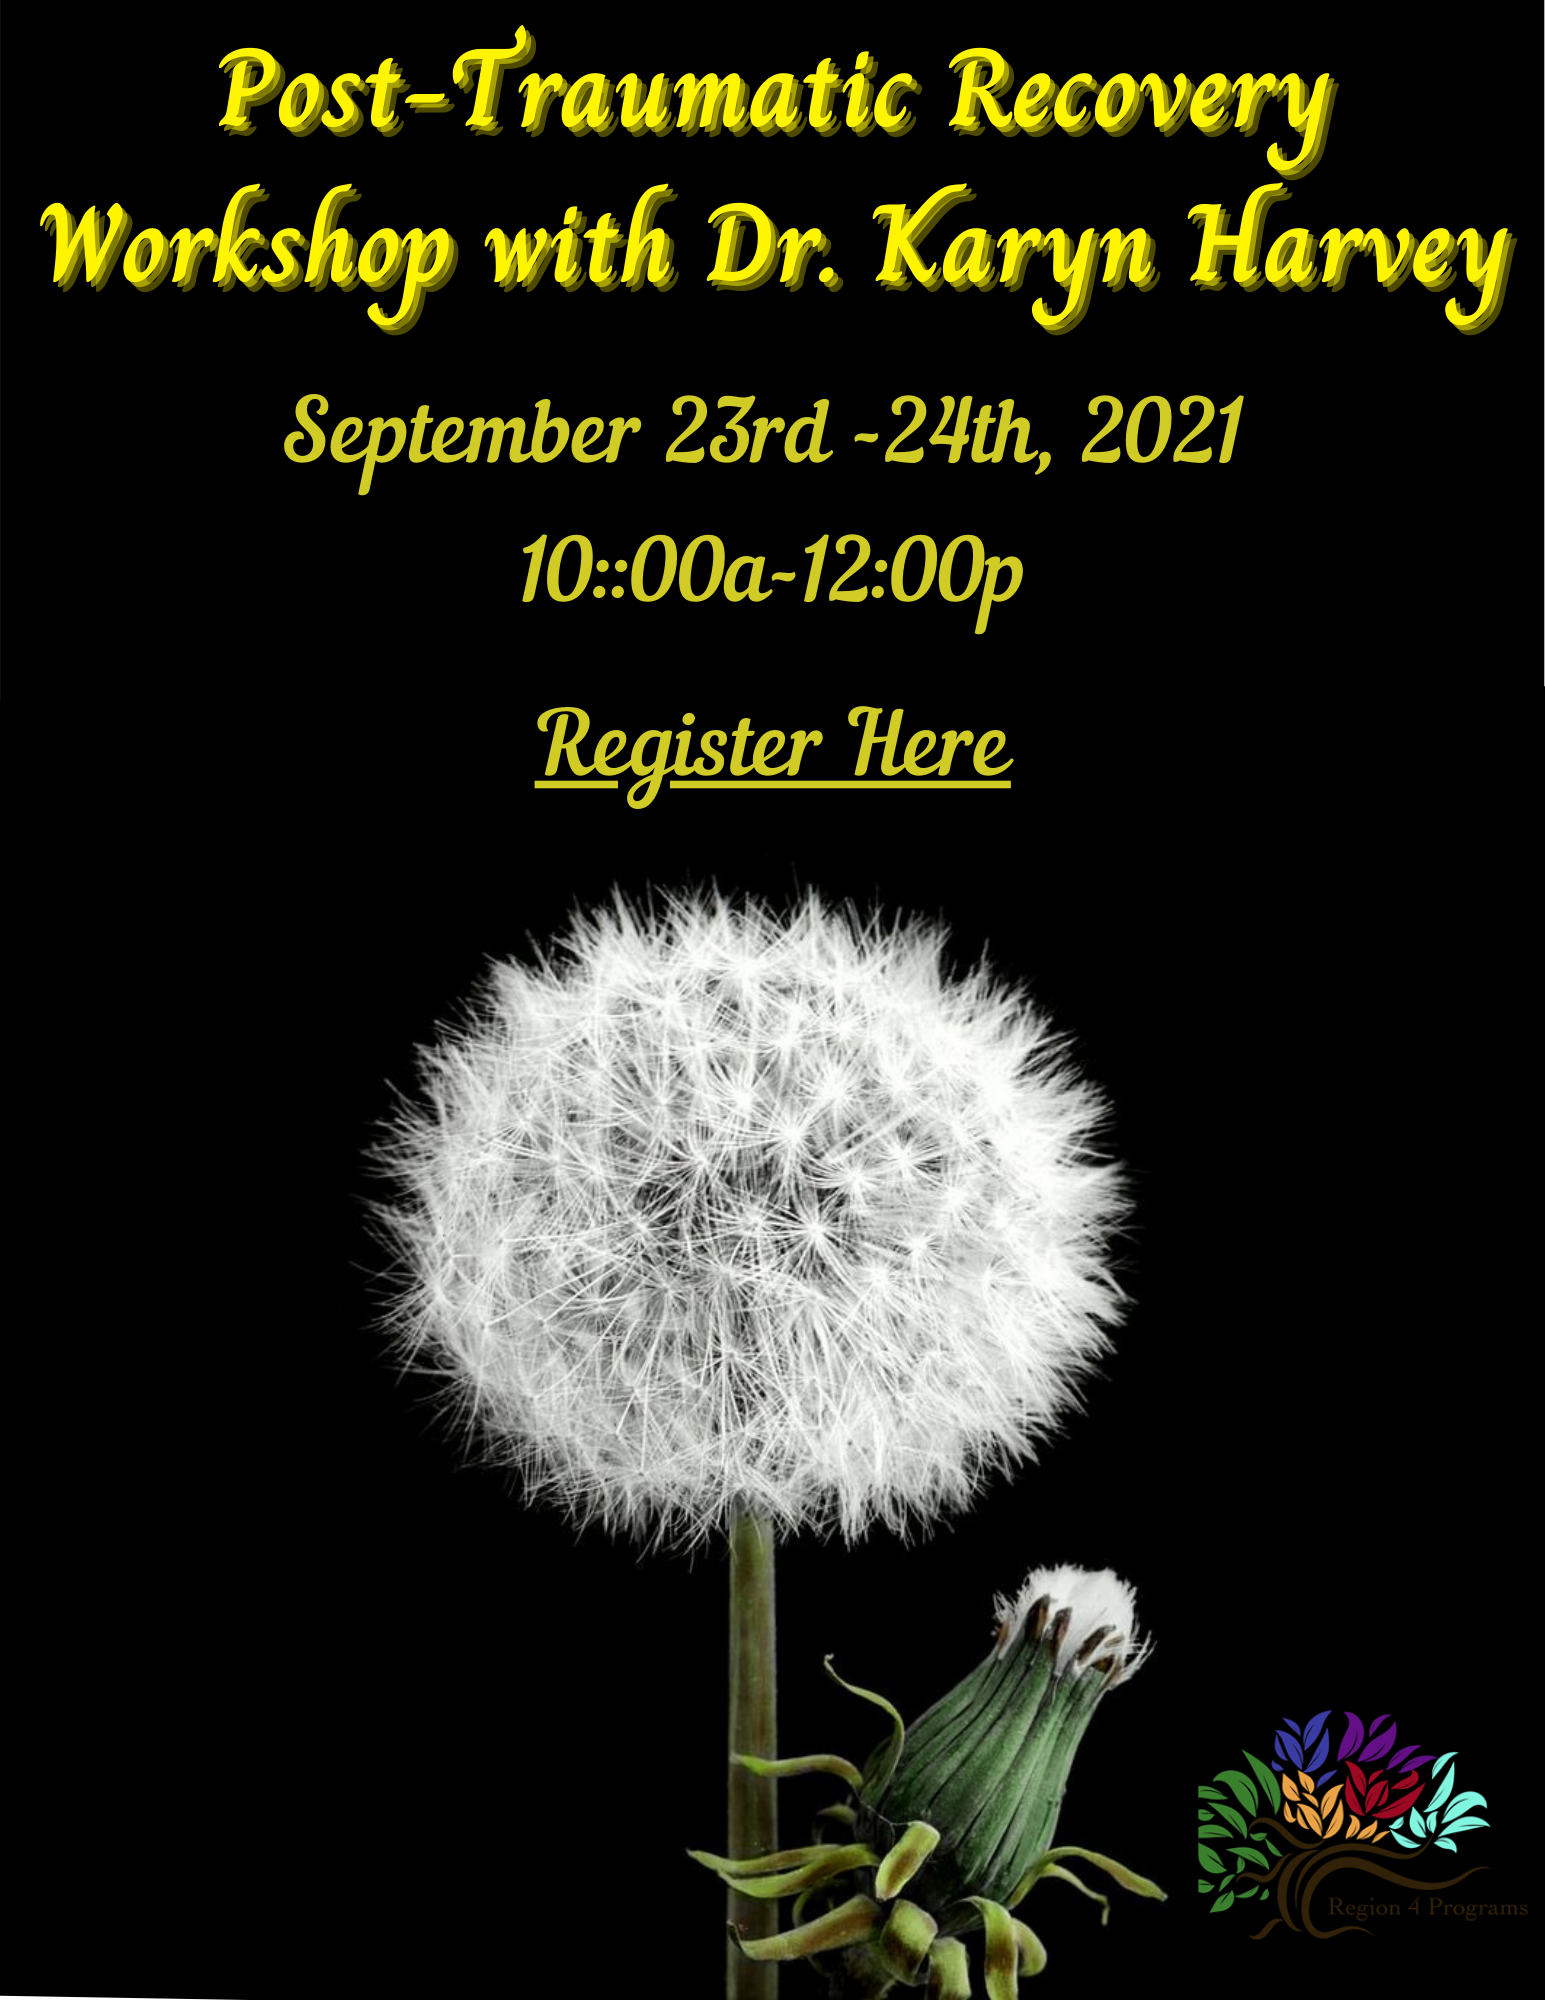 Post-Traumatic-Recovery-Workshop-